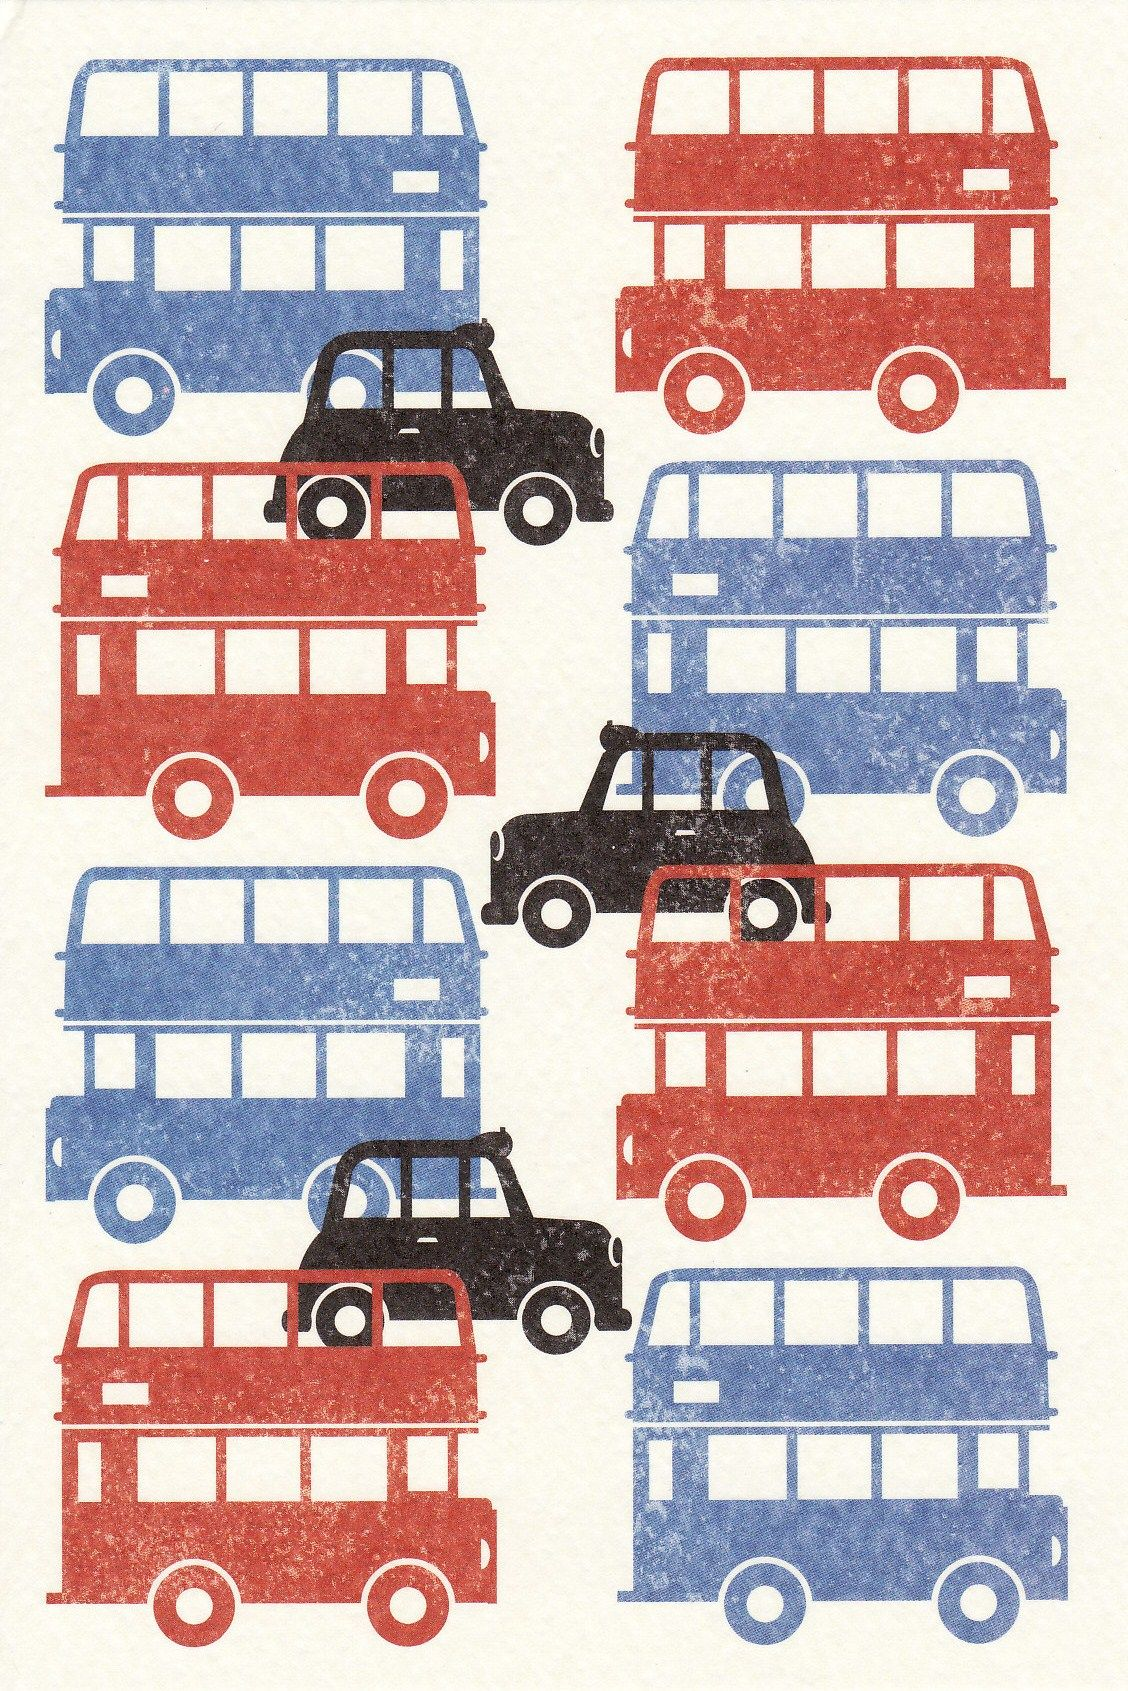 London Buses And Black Cabs British Travel 絵本 ロゴ